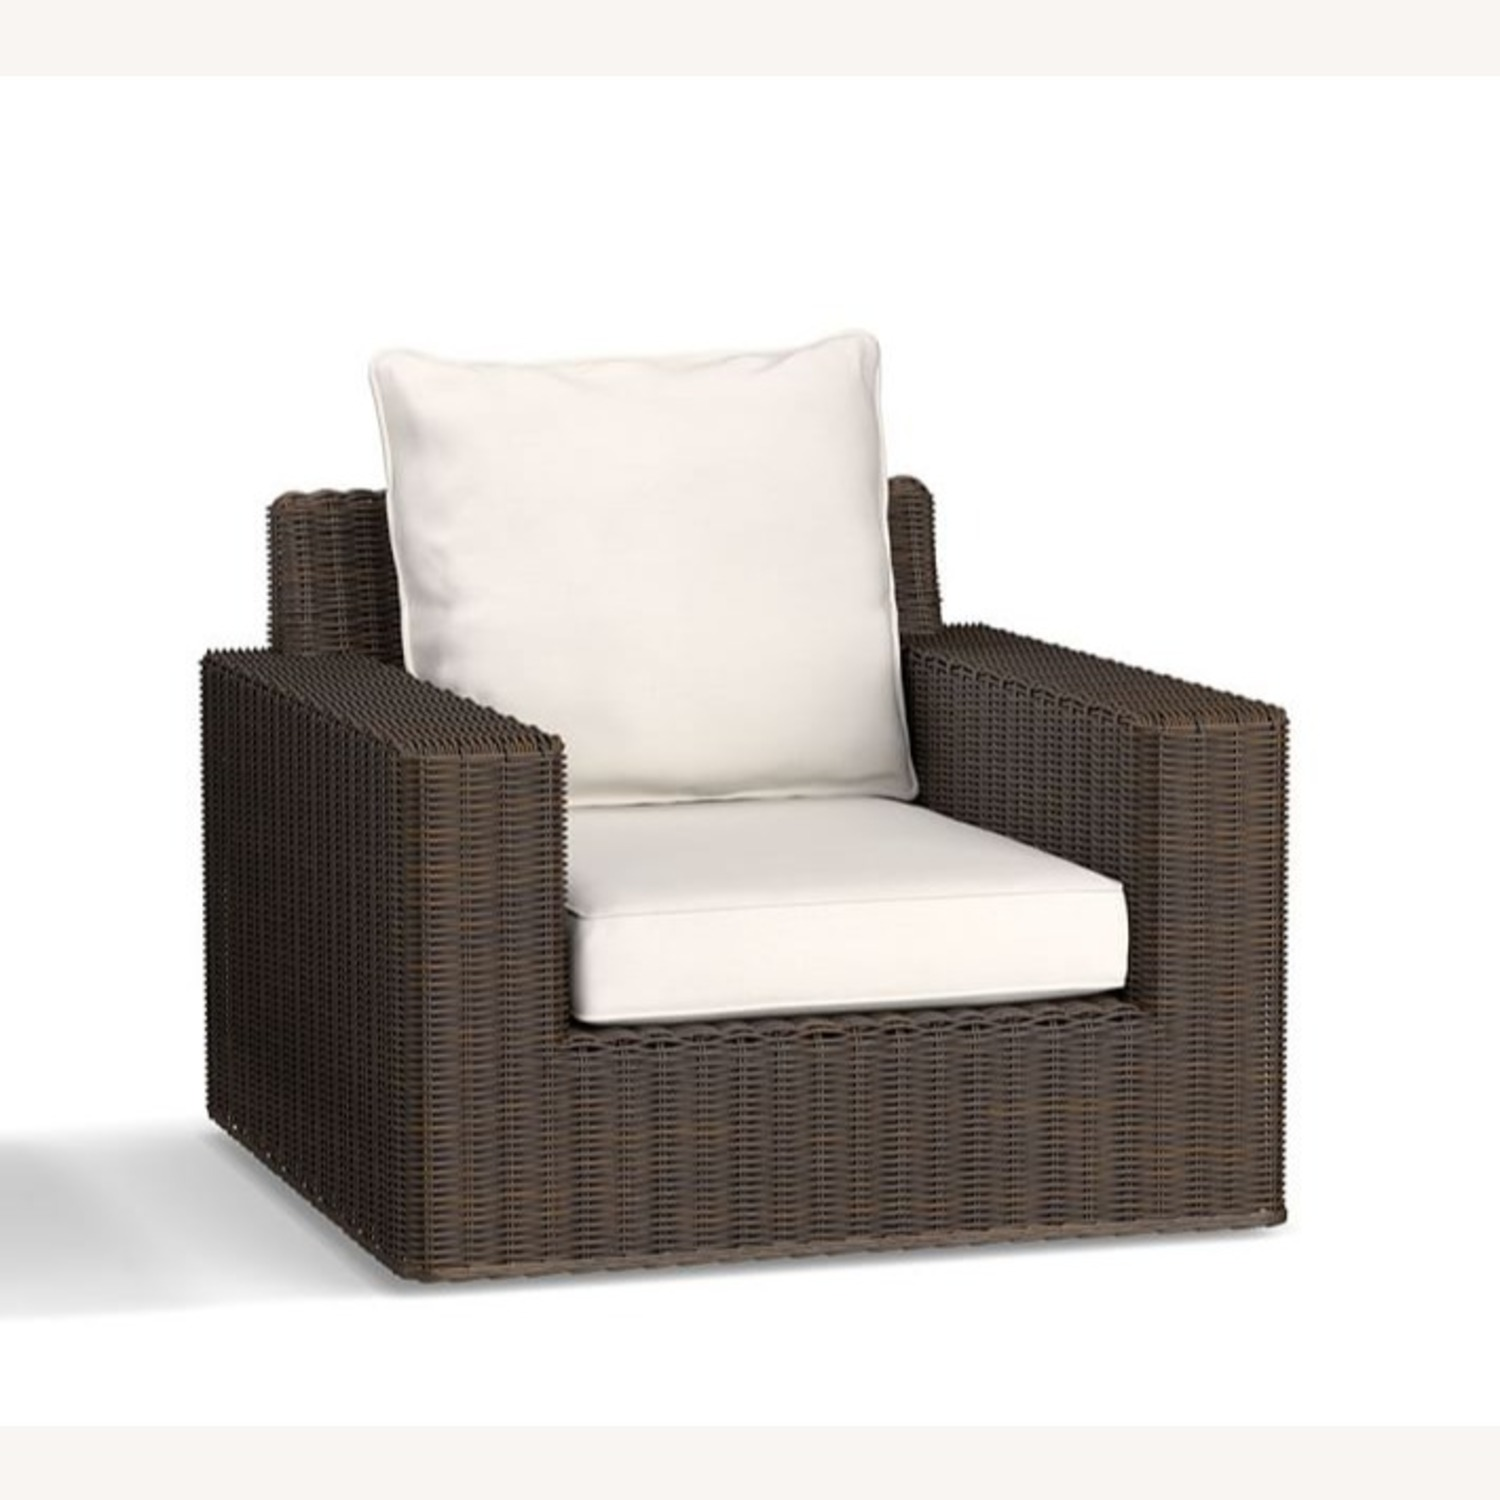 Pottery Barn Torrey All-Weather Lounge Chair - image-1